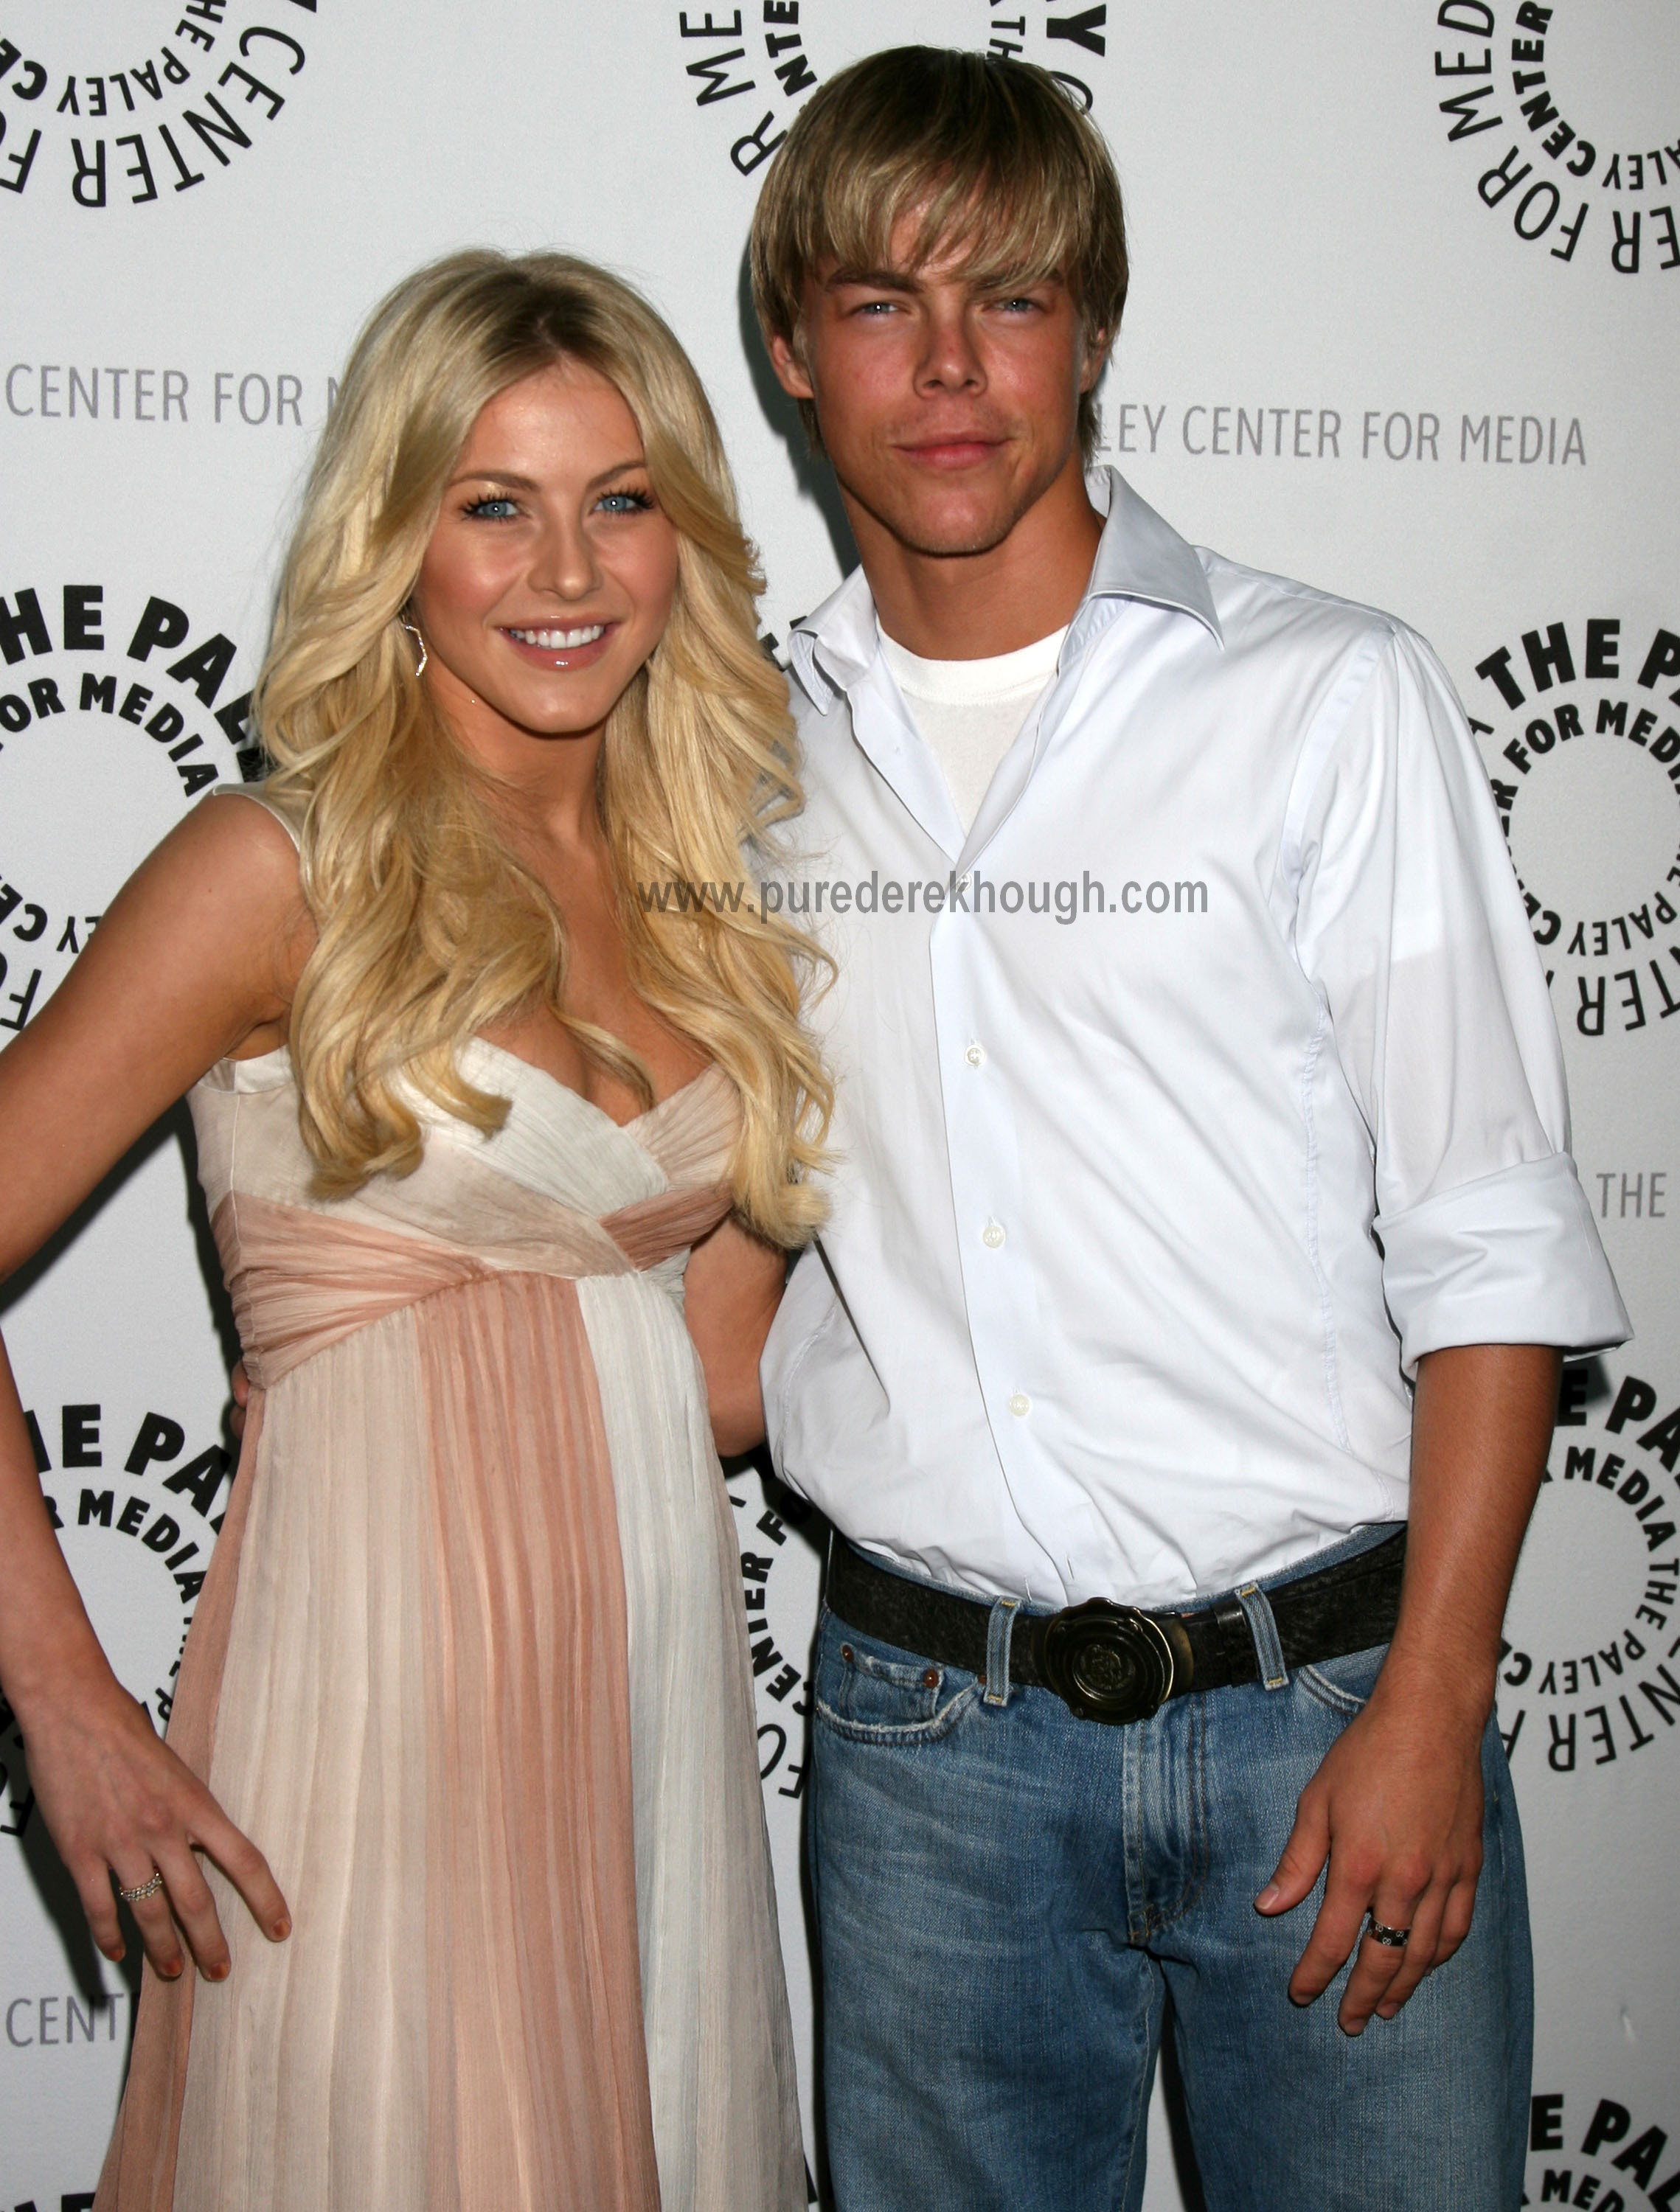 Julianne Hough and brother Derek Hough